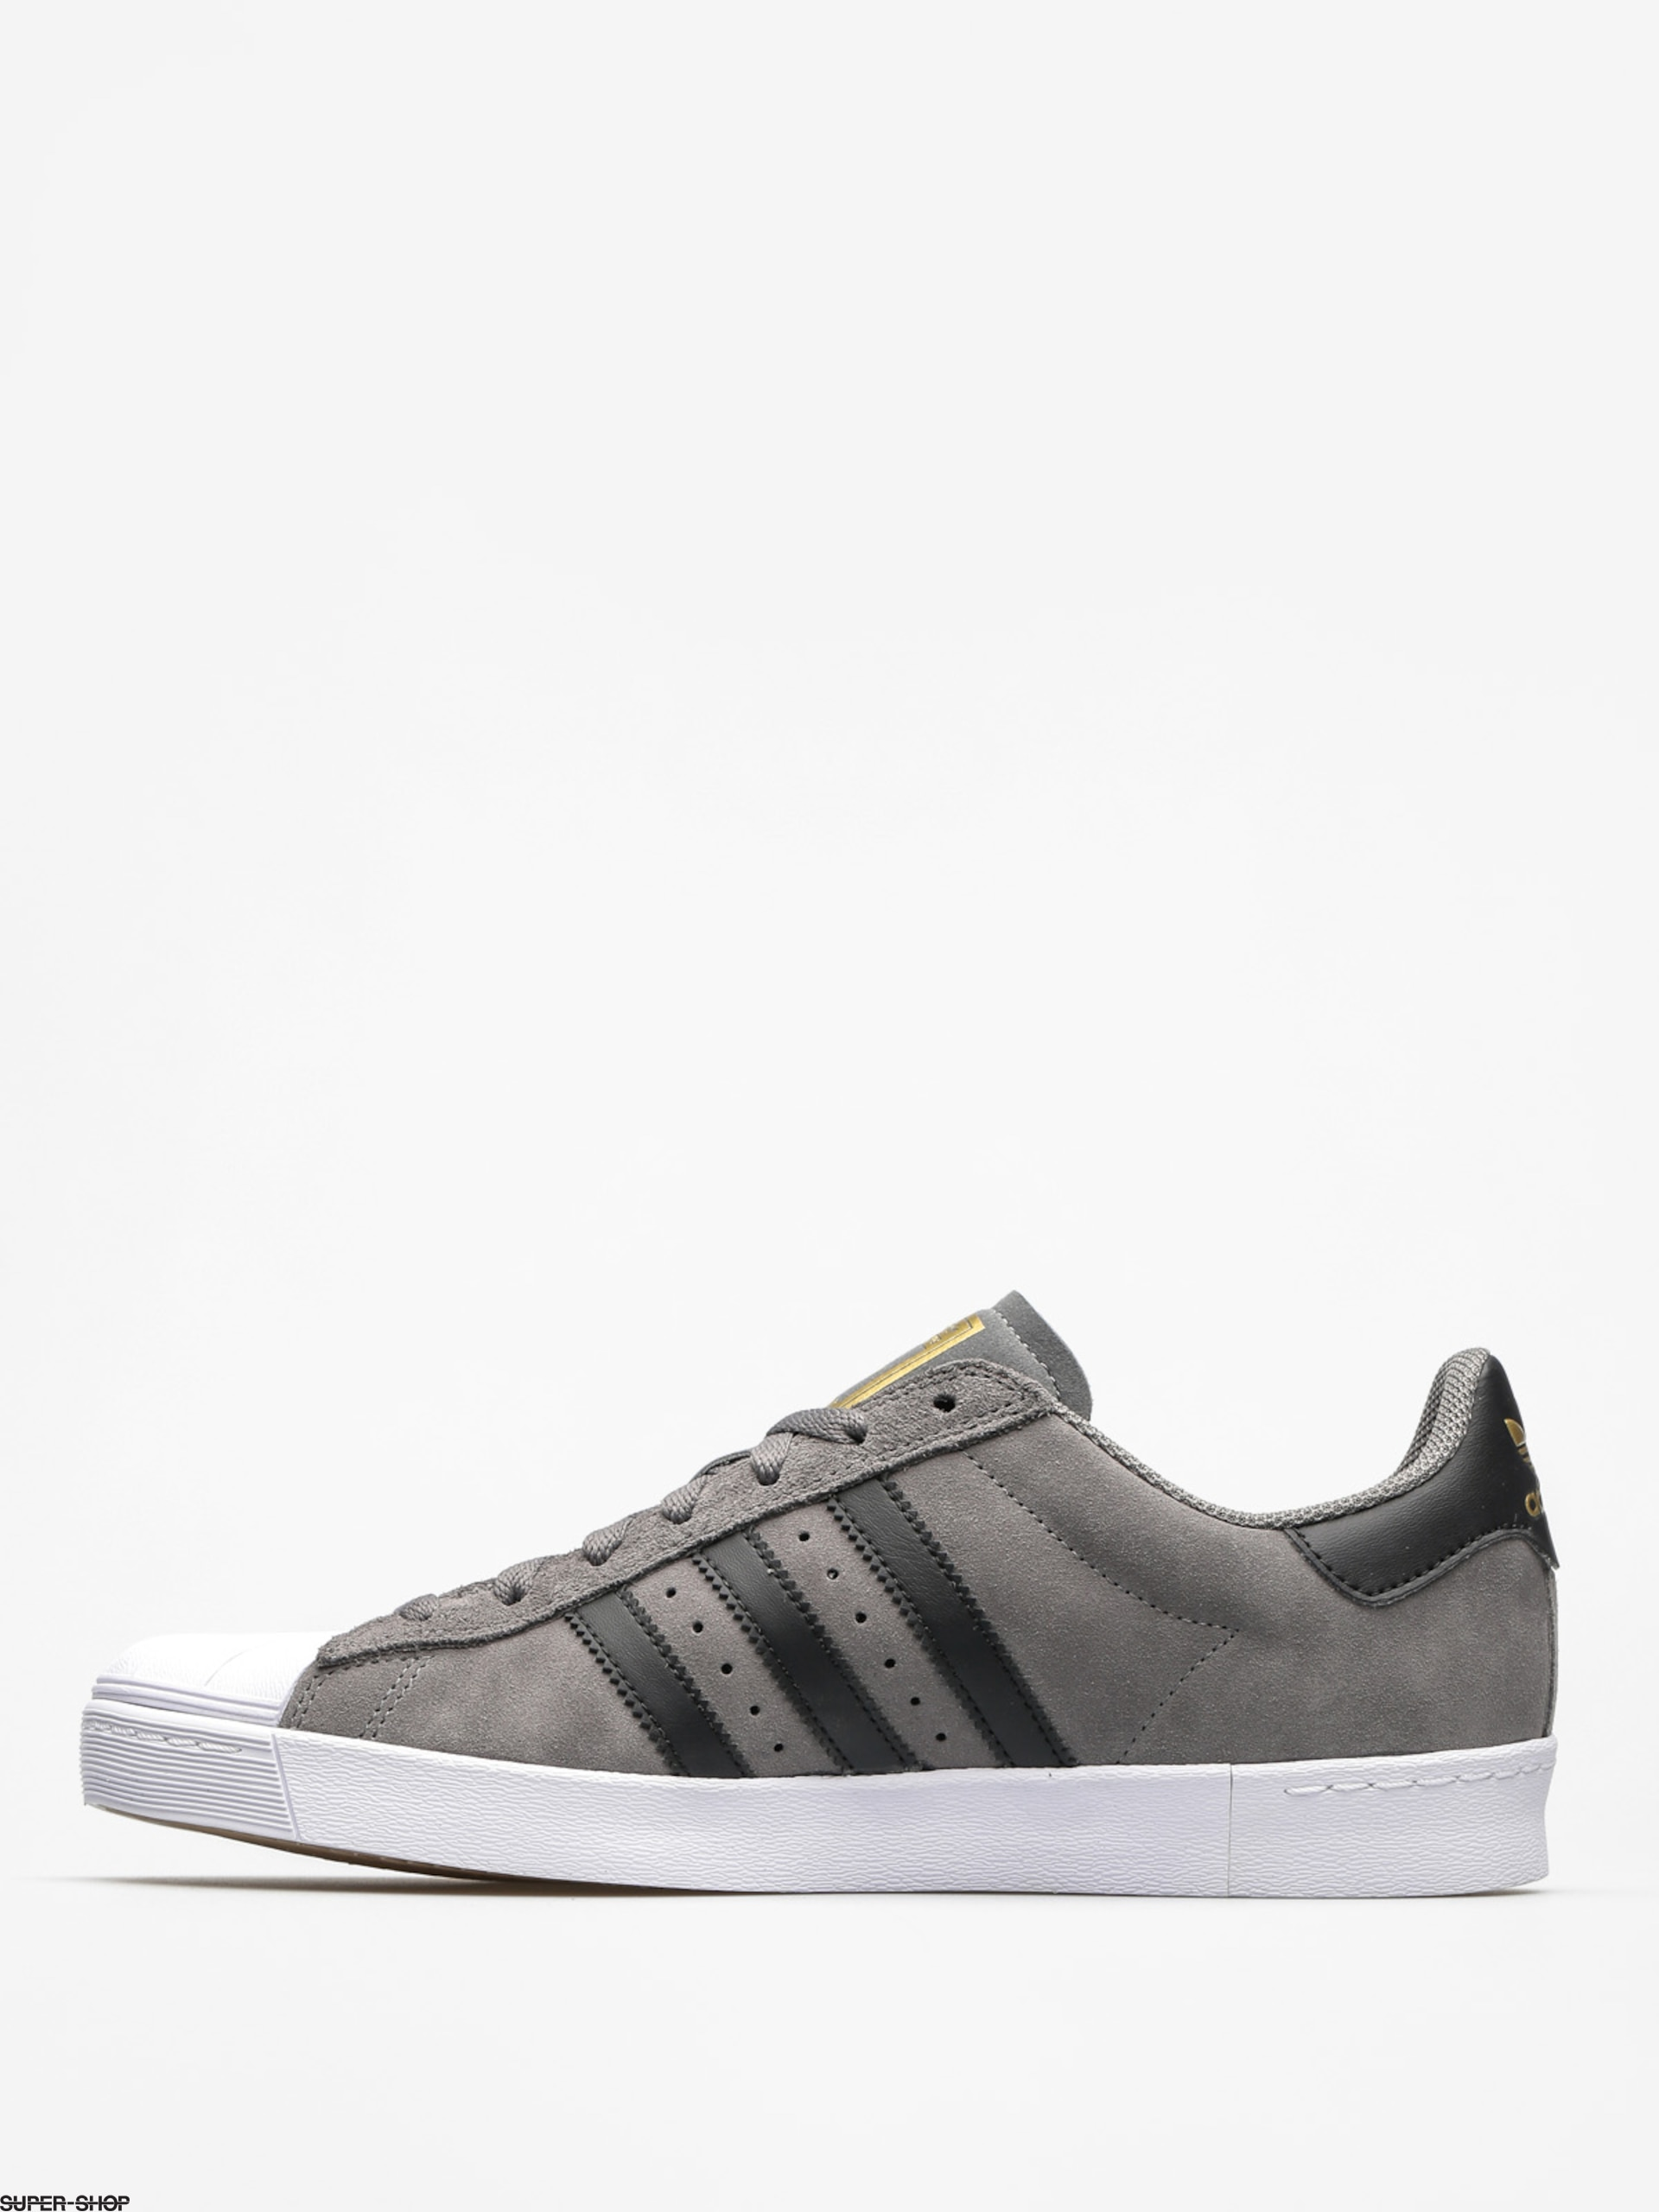 golden goose Cheap Superstar sneakers sale ICAP Group